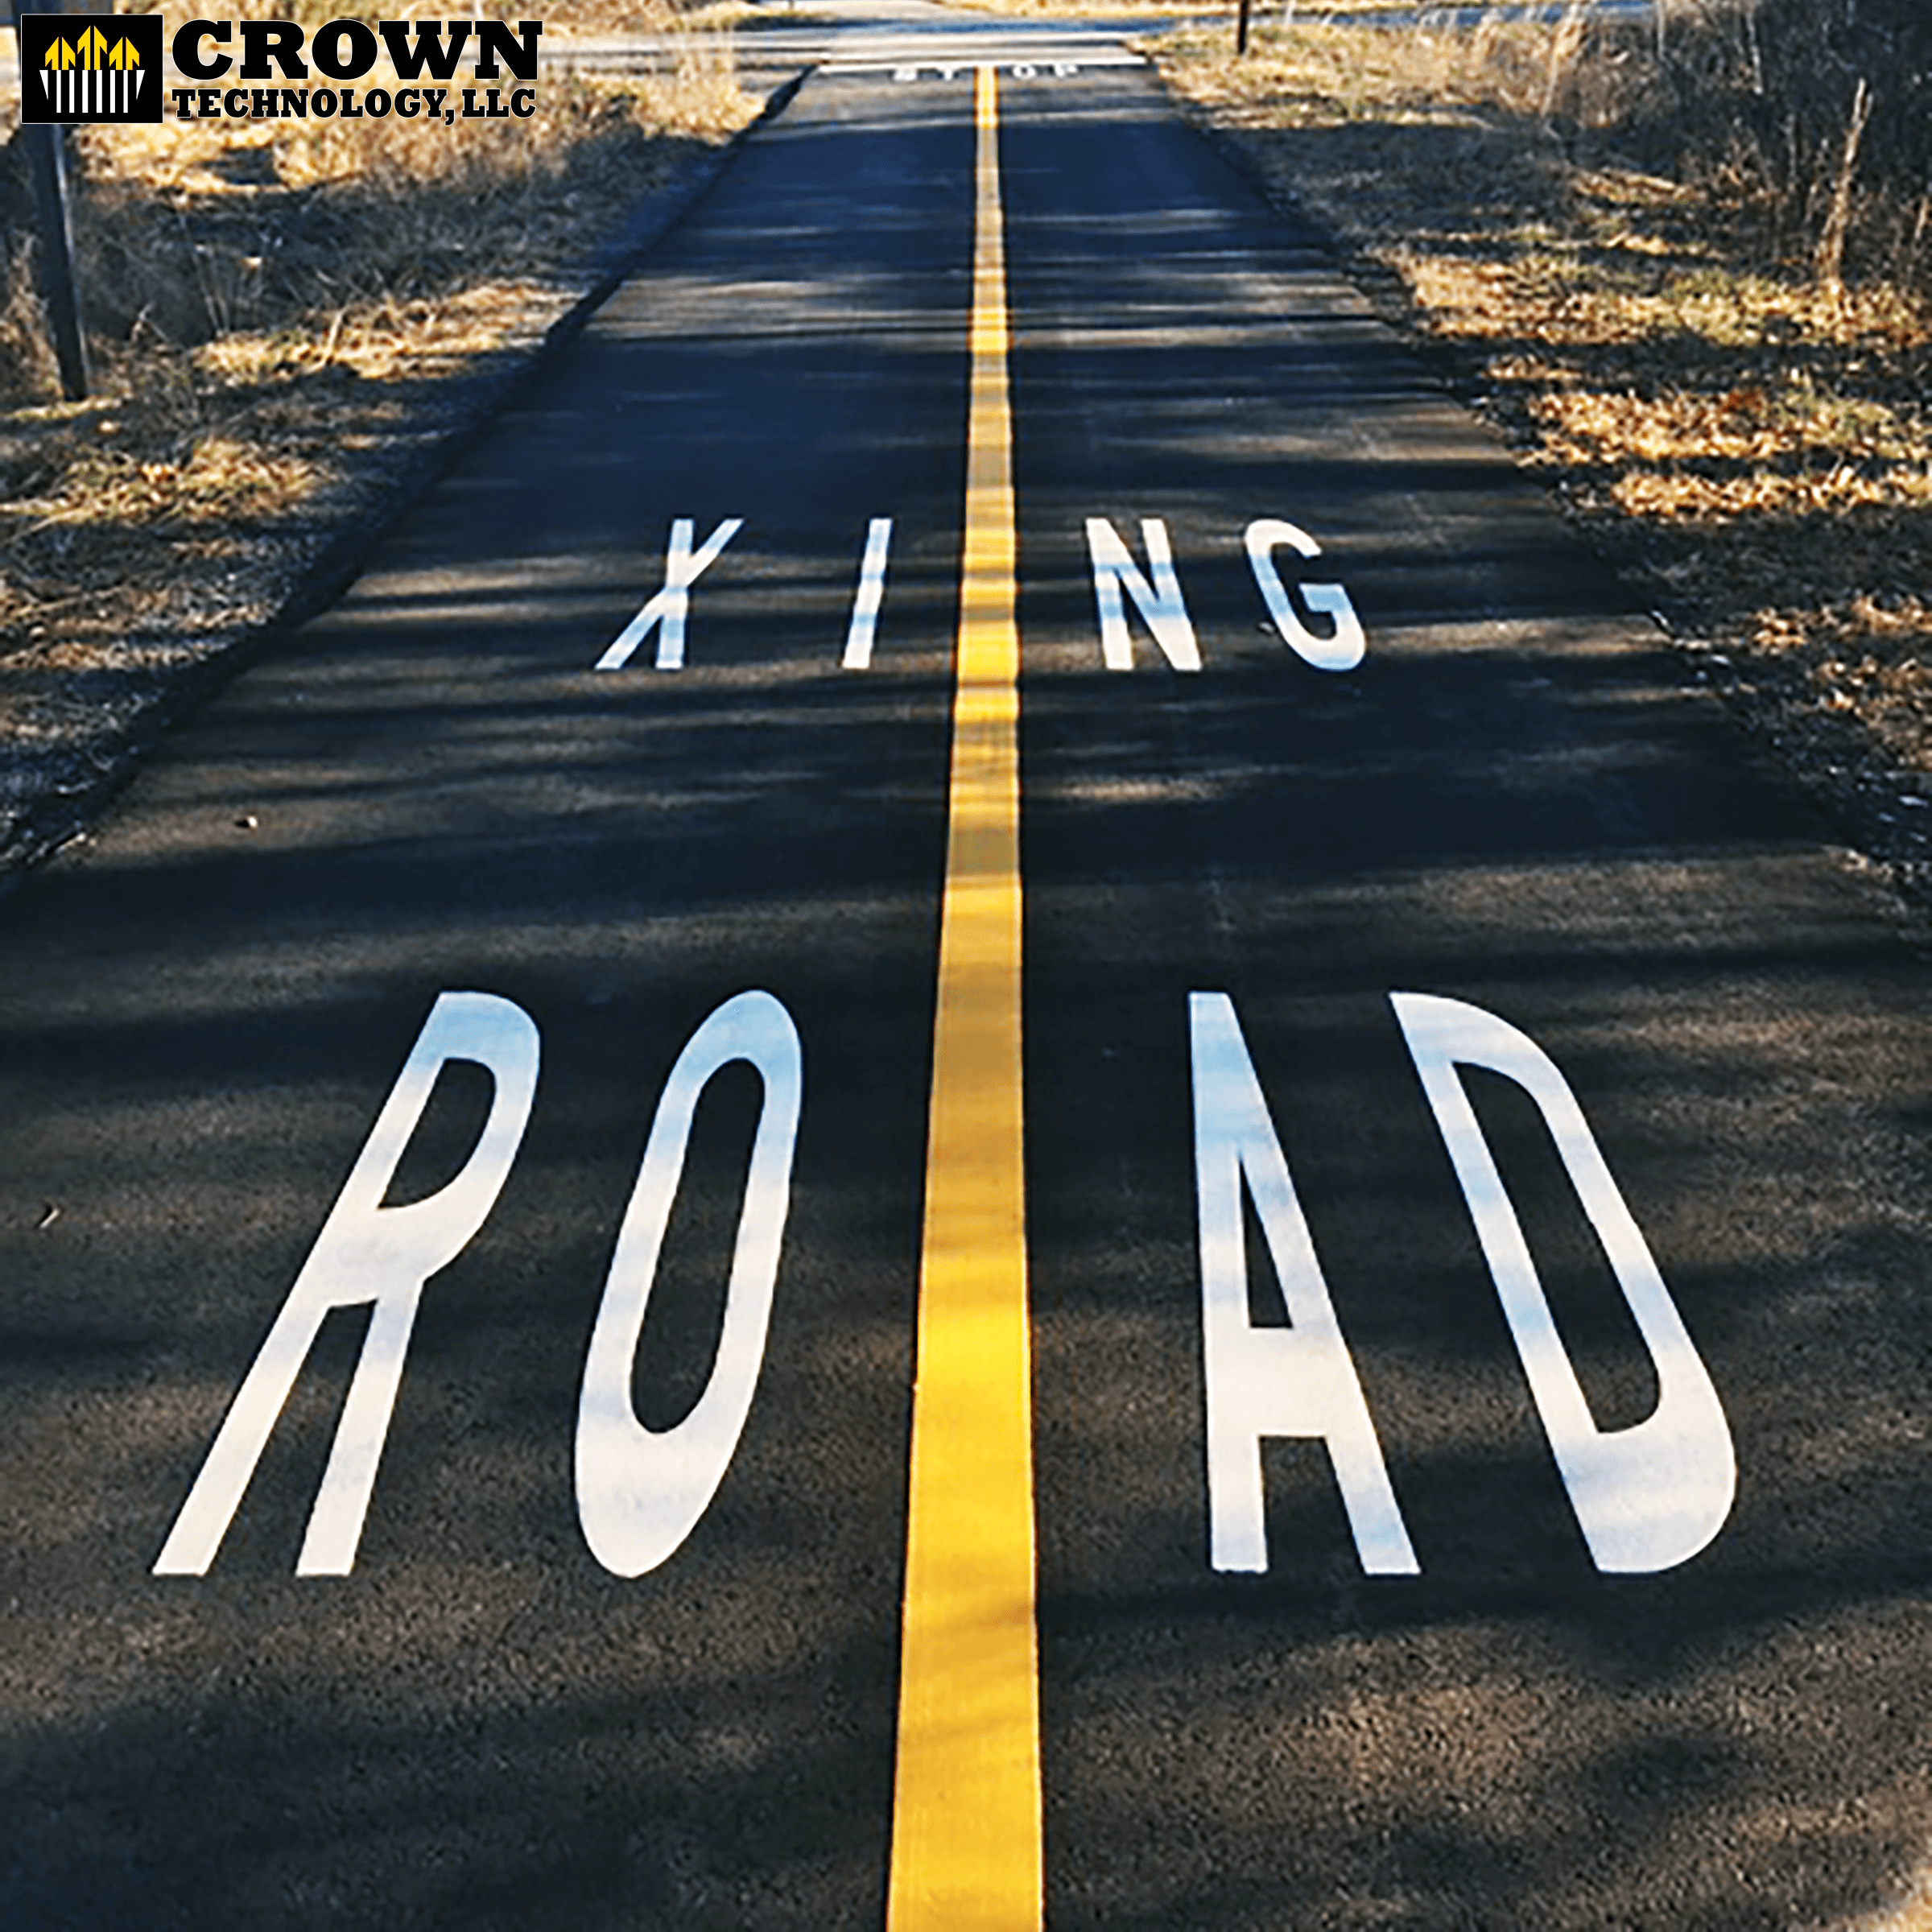 Crown XING FHWA and ONLY FHWA